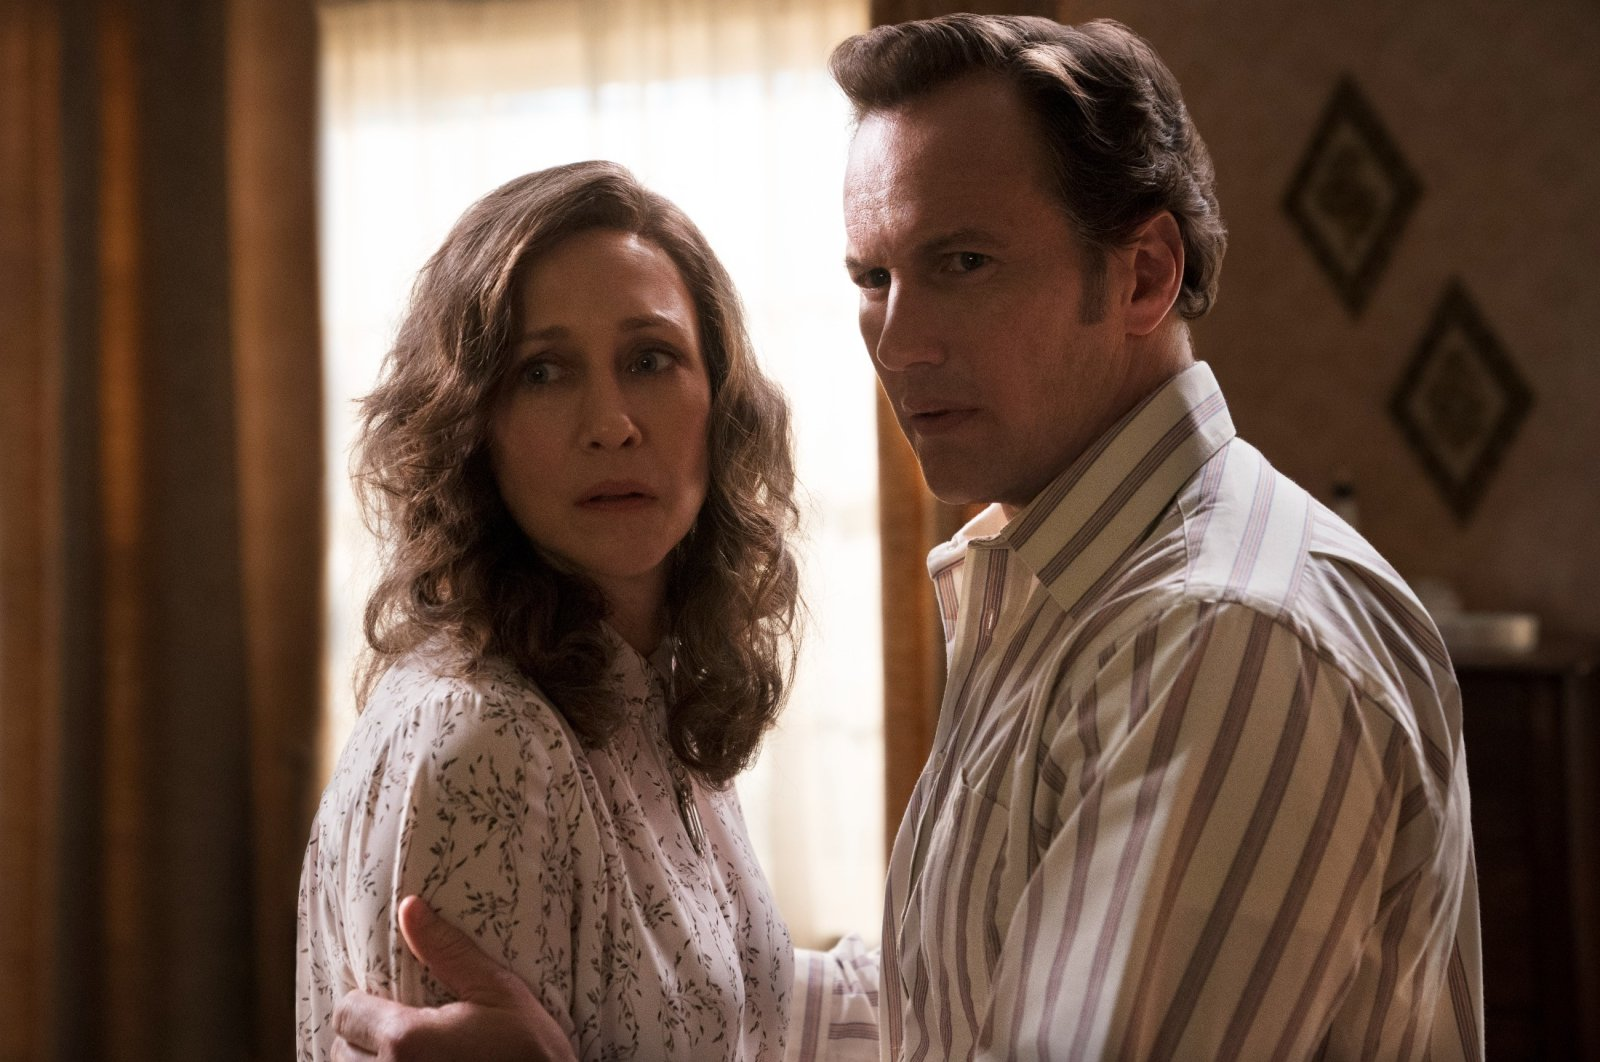 """Vera Farmiga (L), and Patrick Wilson stand next to each other, in a scene from """"The Conjuring: The Devil Made Me Do It."""" (Warner Bros. via AP)"""